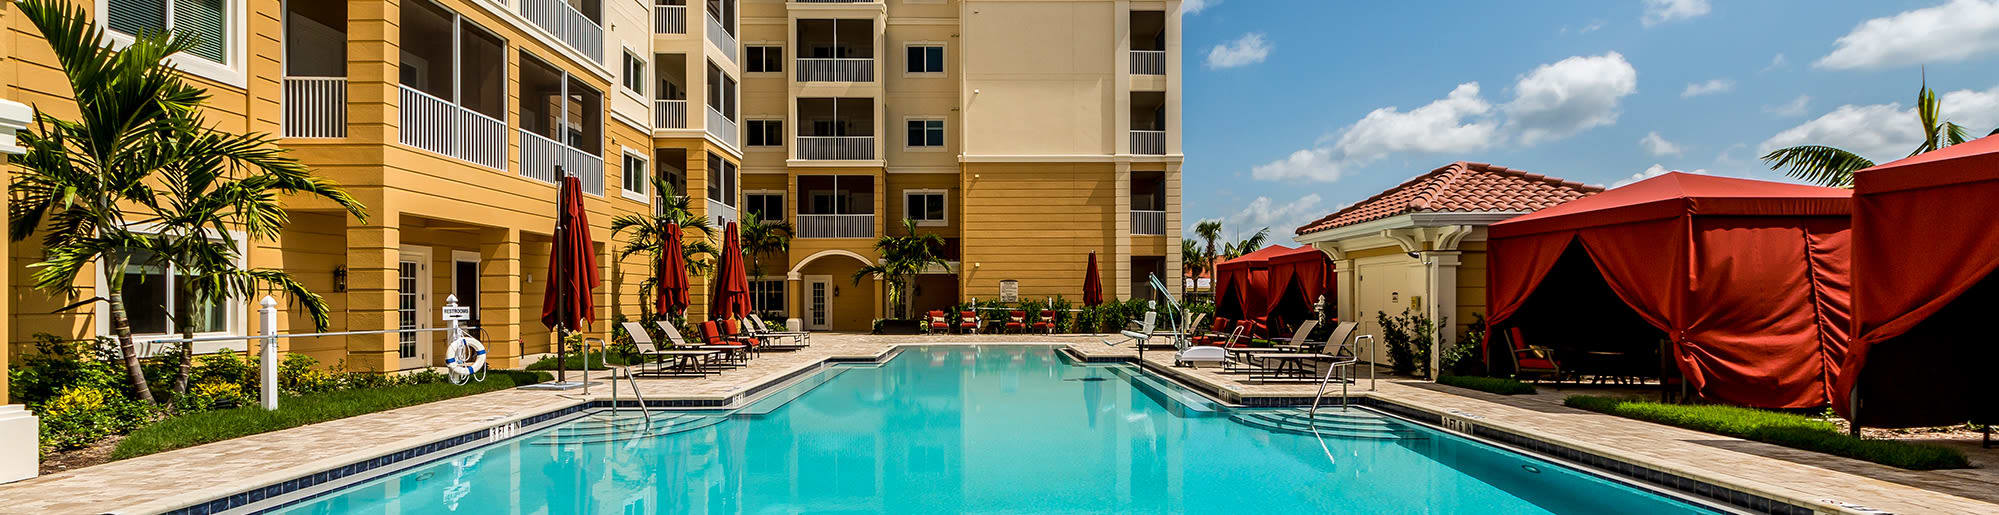 Senior living inclusive one price personal care plan in Fort Myers